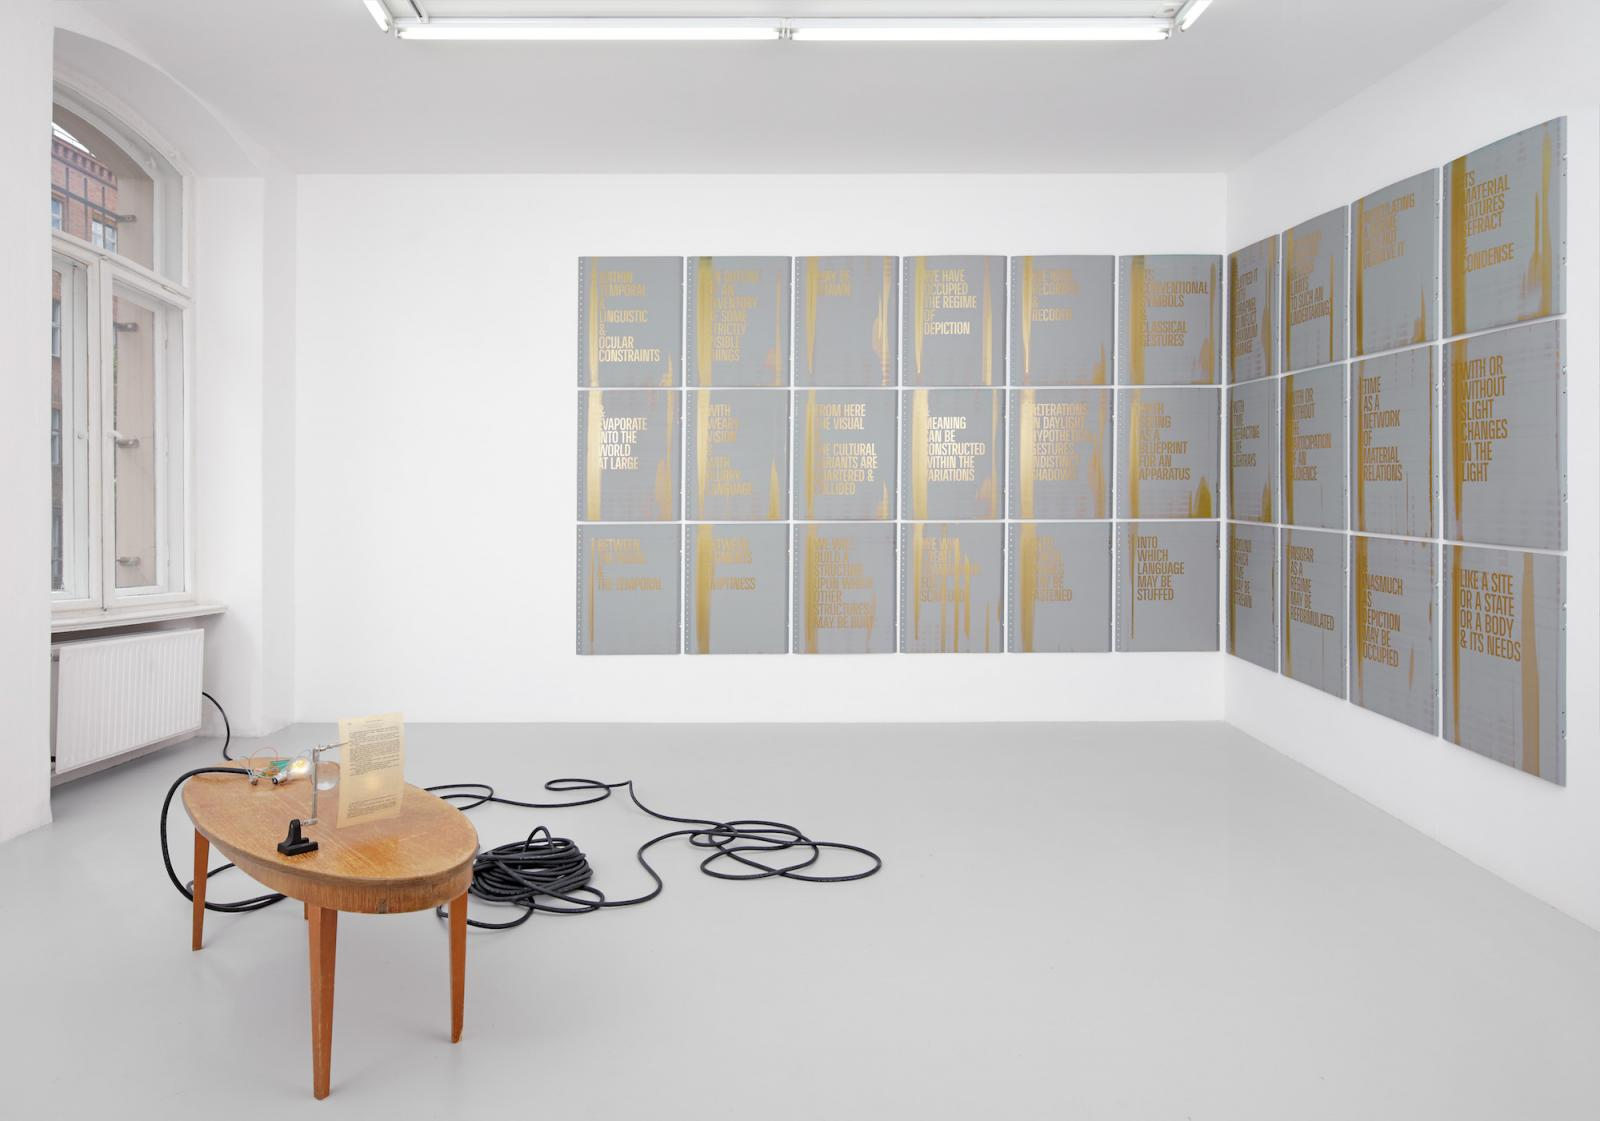 Pavel Büchler /Life & Opinions/(2004)  Studio for Propositional Cinema /ALTERATIONS IN DAYLIGHT:/ /HYPOTHETICAL GESTURES: INDISTINCT SHADOWS/ installation view at Tanya Leighton in cooperation with Galerie Max Mayer